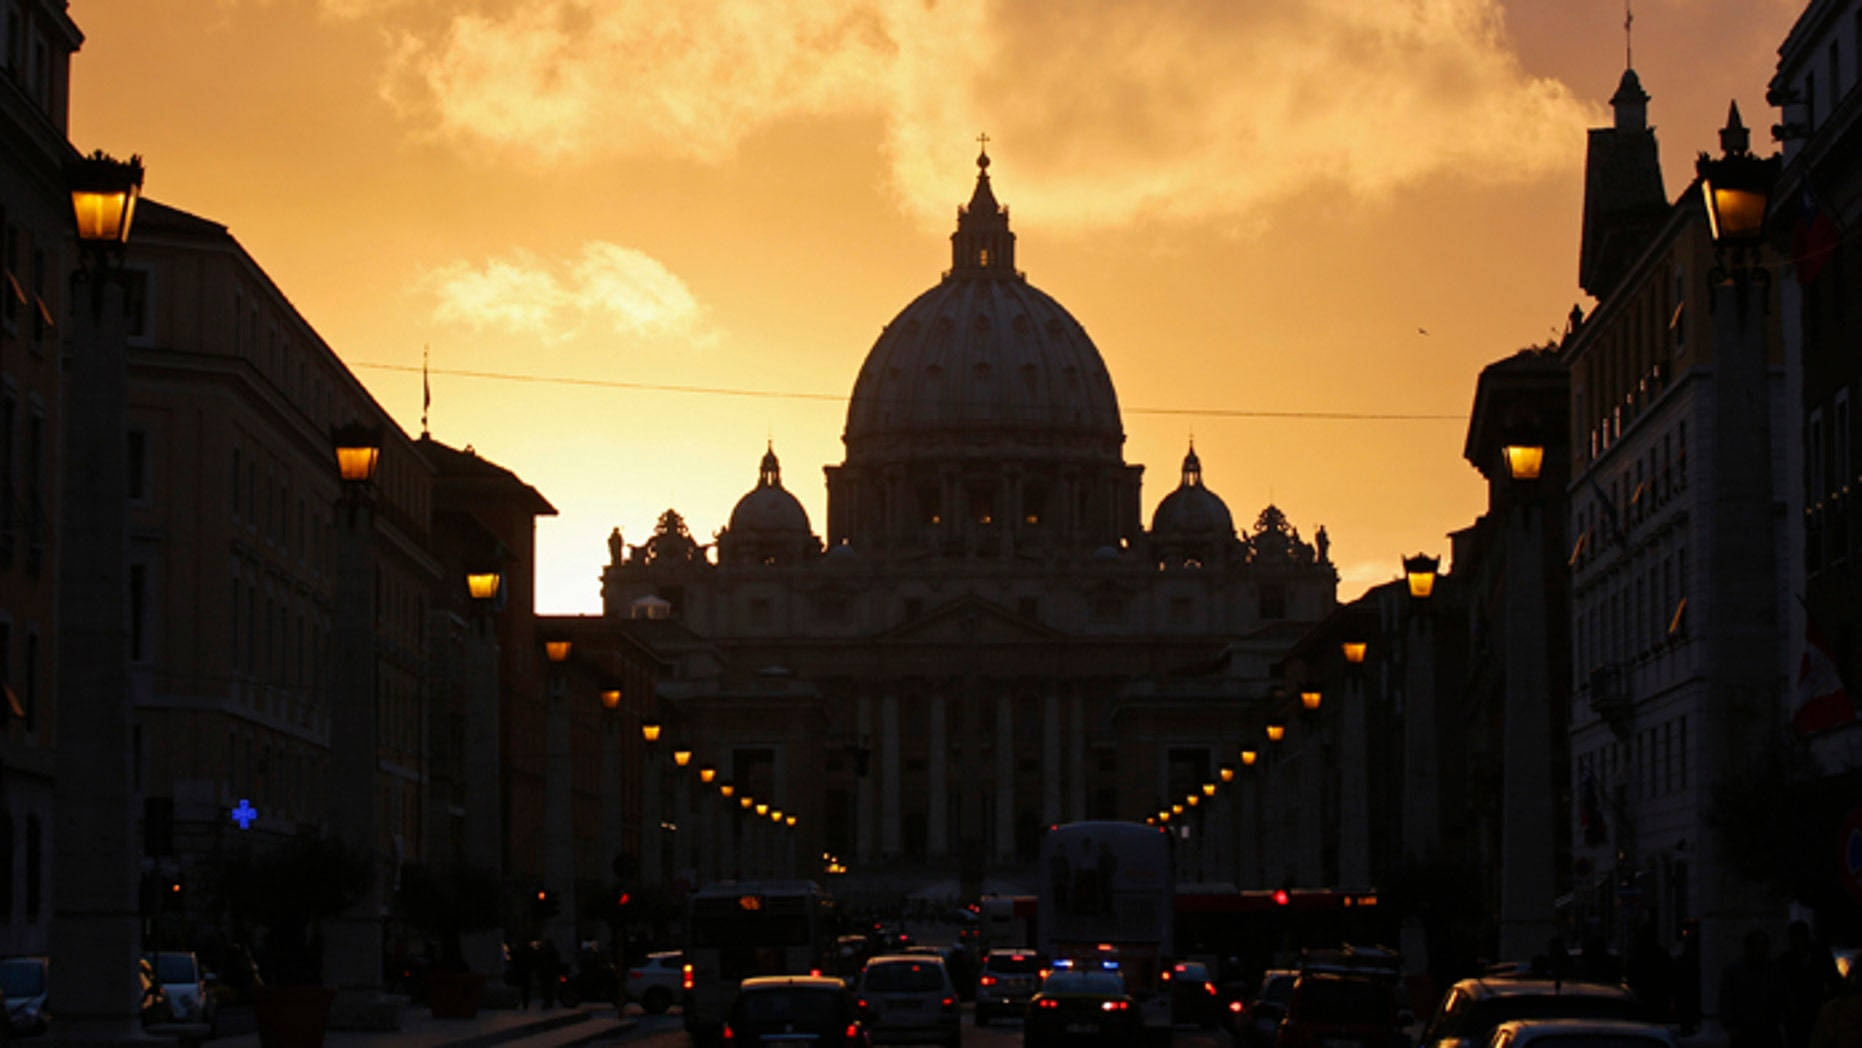 Saint Peter's Basilica at the Vatican is silhouetted during sunset in Rome. Roman Catholic Cardinals will begin their conclave inside the Vatican's Sistine Chapel Tuesday to elect a new pope.